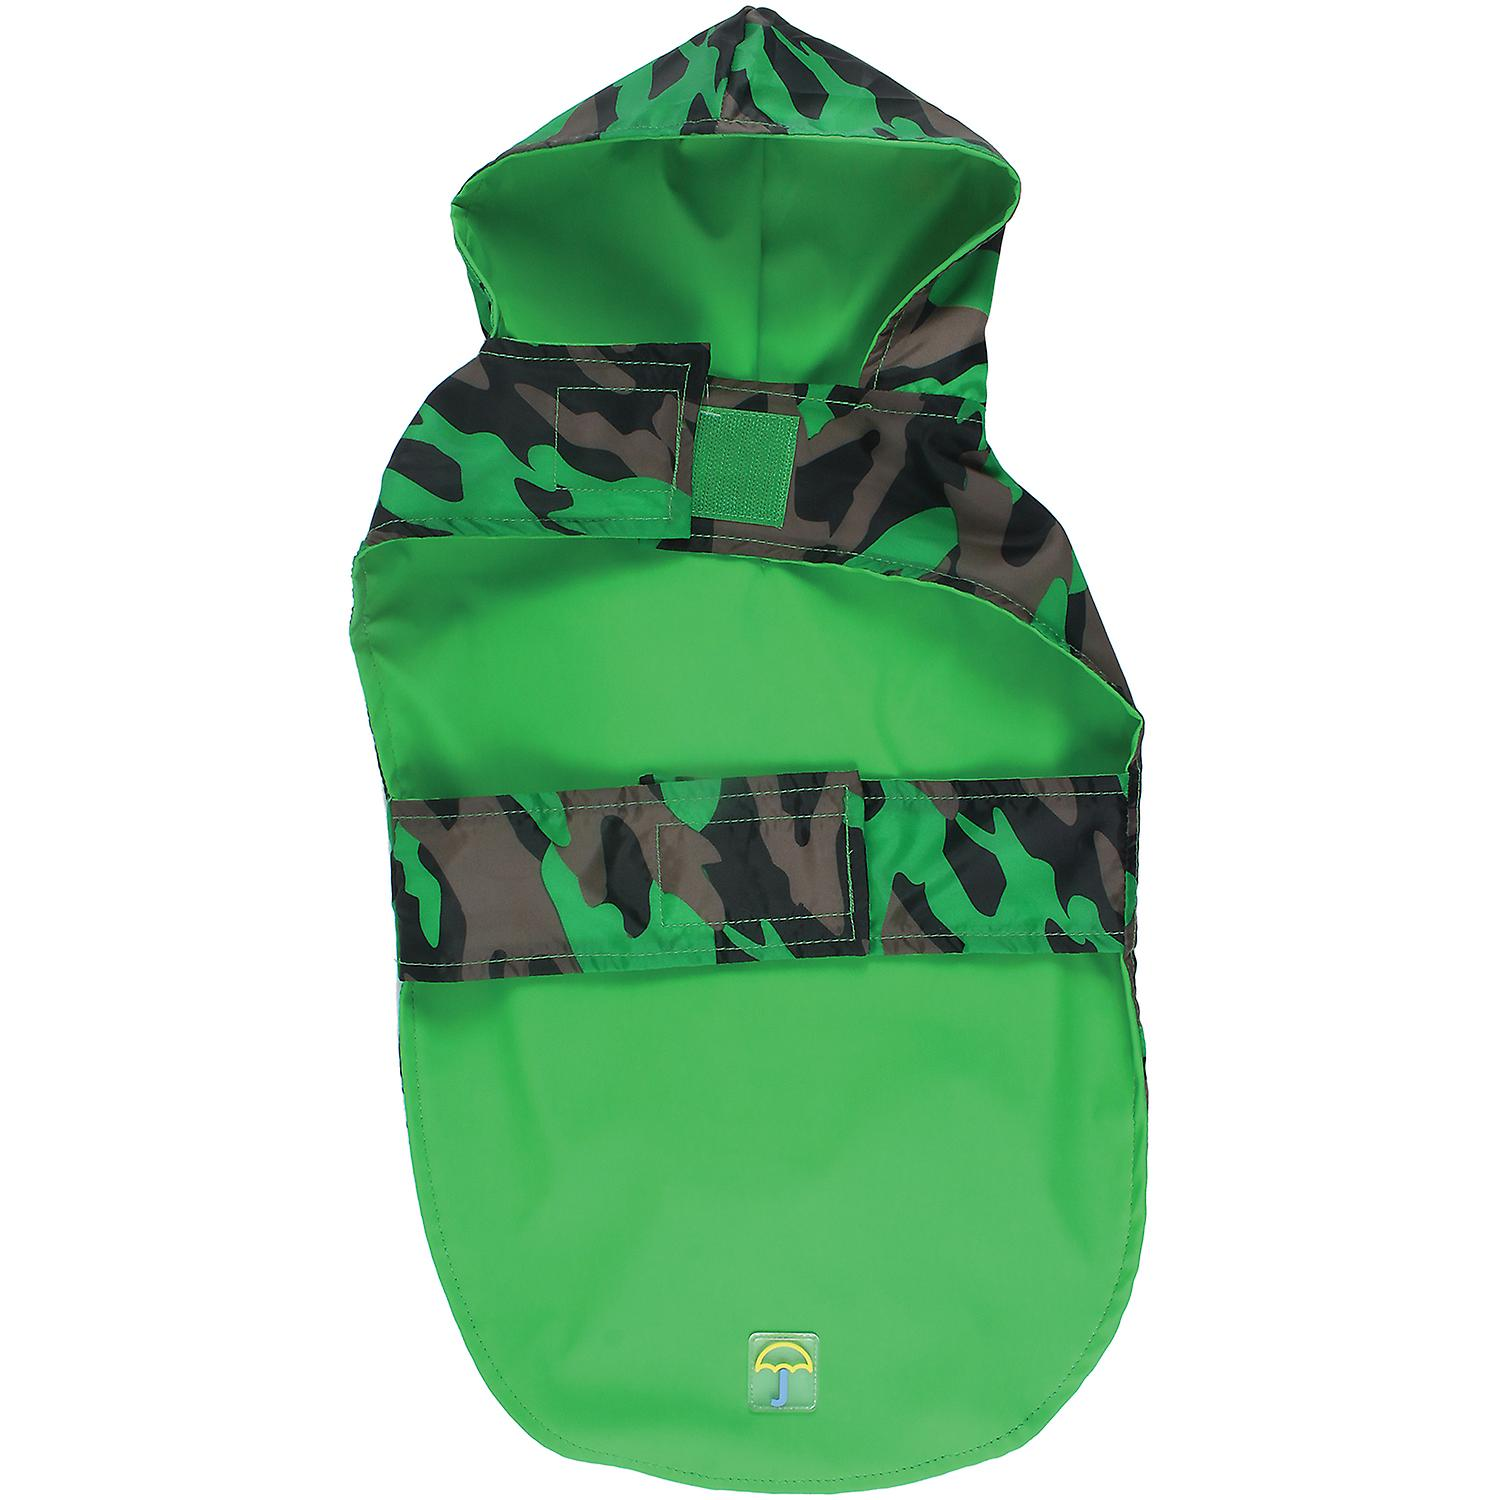 Jelly Wellies Camouflage Raincoat Extra Small 11